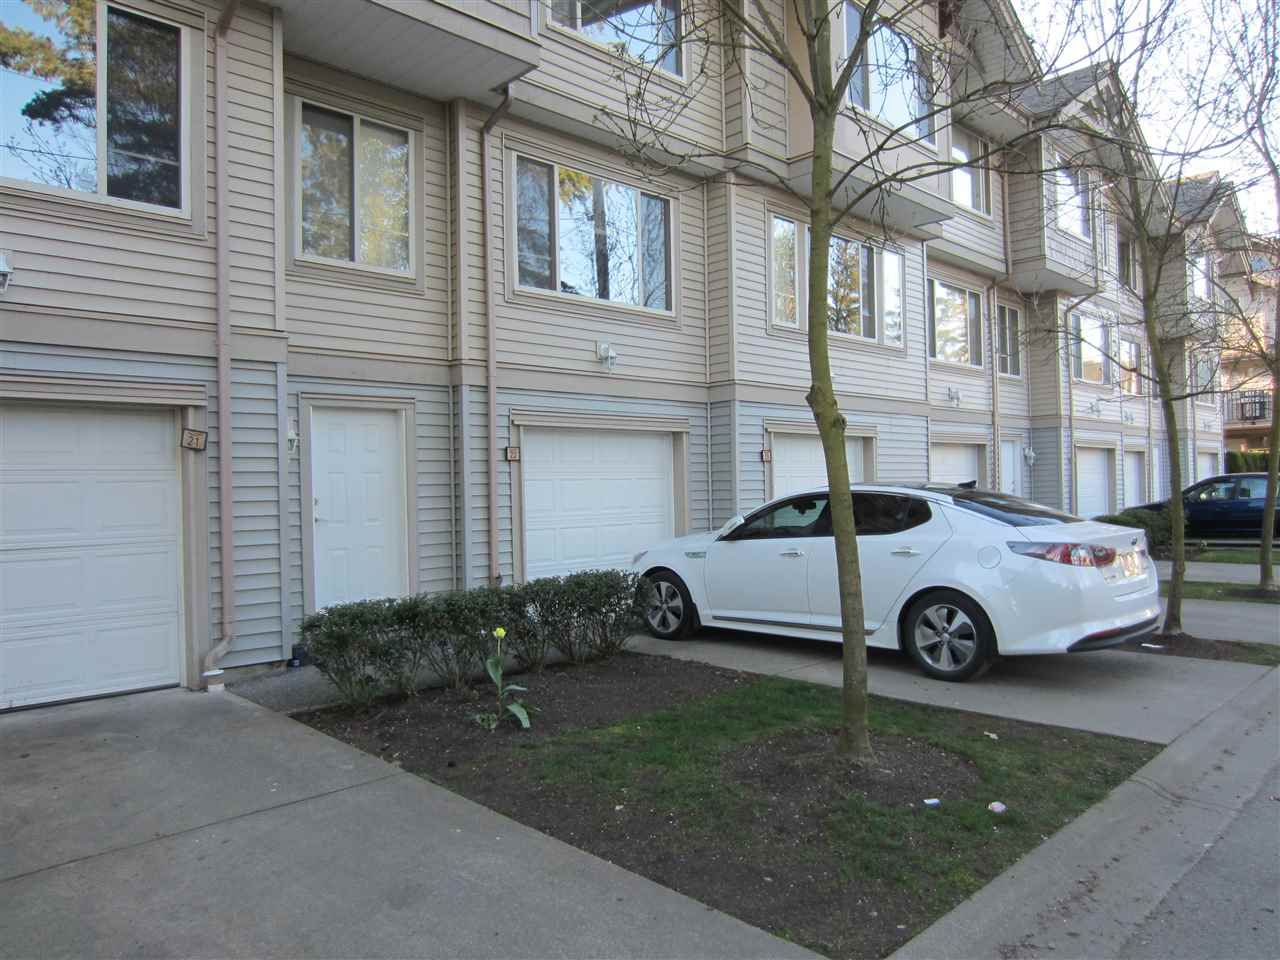 """Main Photo: 22 5388 201A Street in Langley: Langley City Townhouse for sale in """"THE COURTYARDS"""" : MLS®# R2064811"""